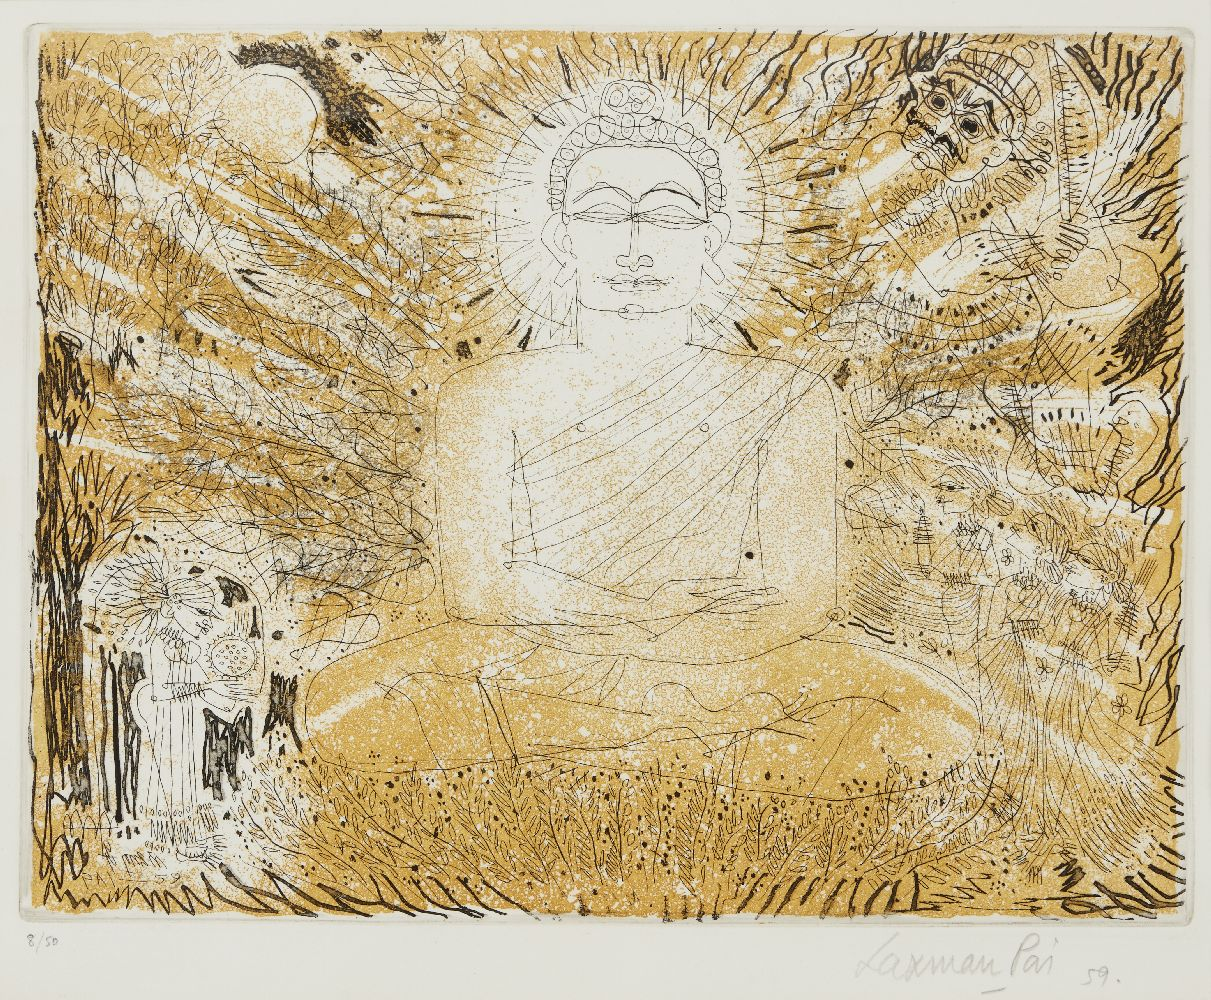 Laxman Pai (b. 1926), Untitled, Buddha, 1959, etching and watercolour, 8/50, signed, dated and